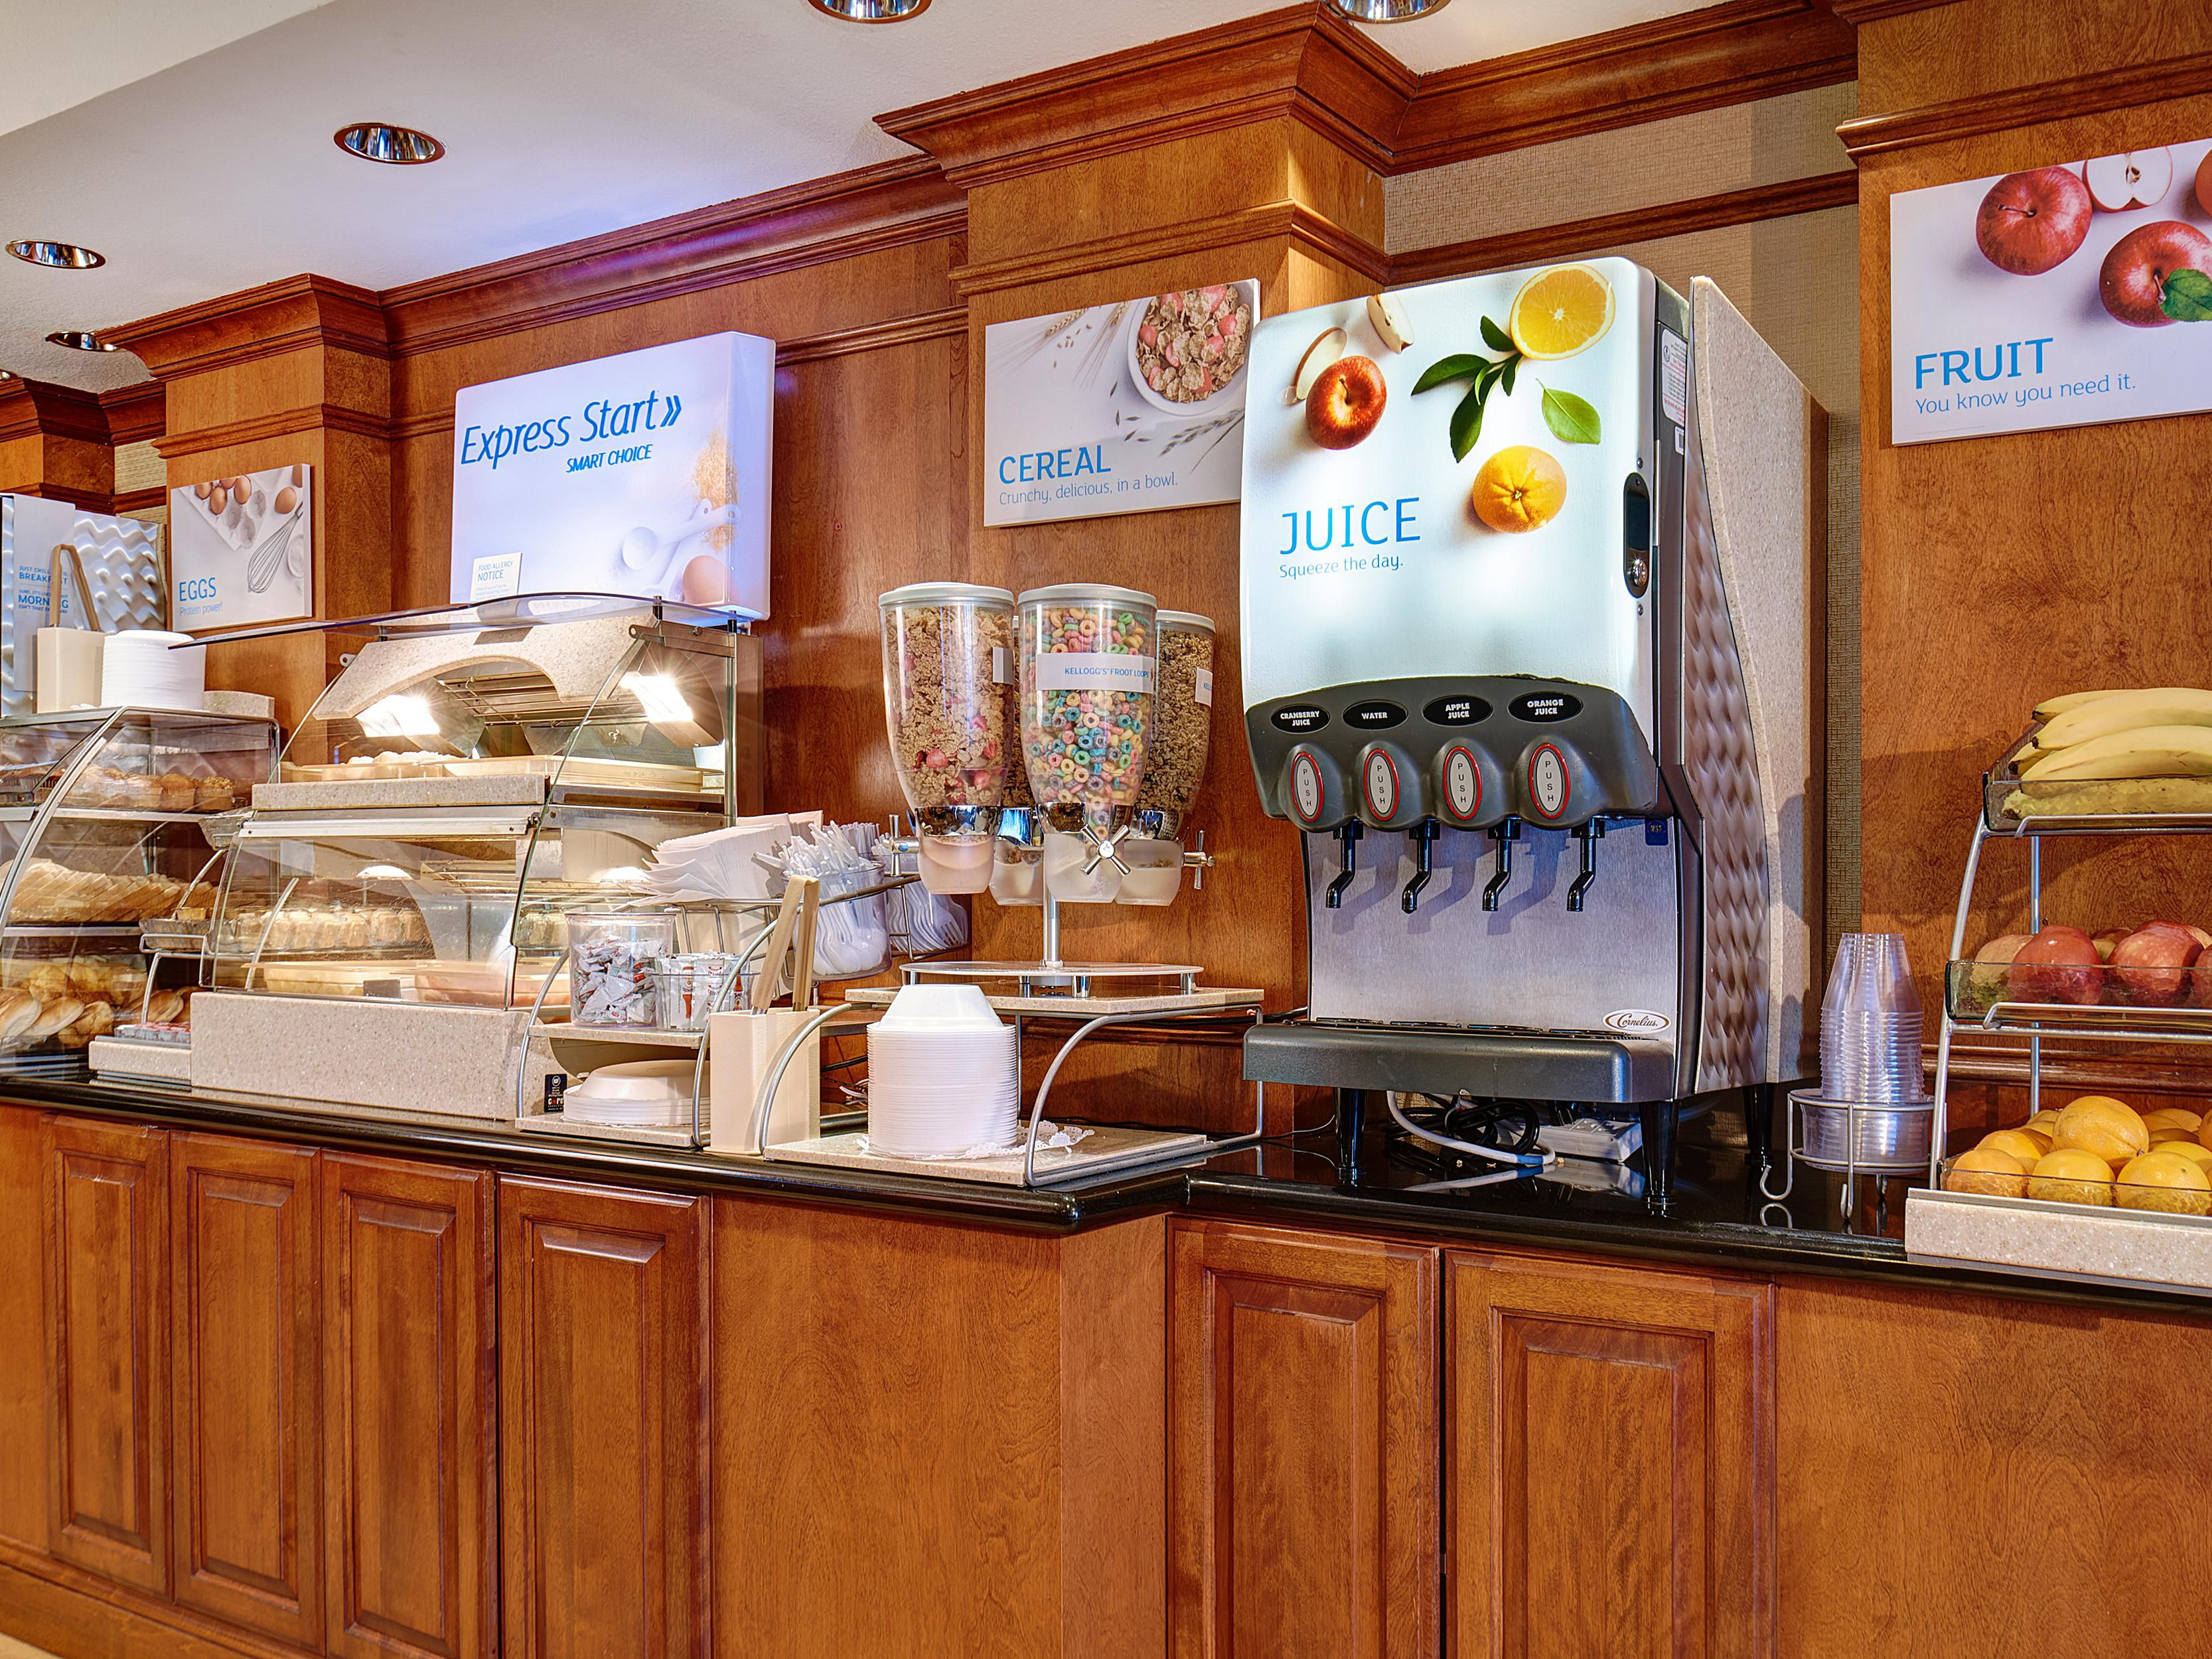 Enjoy our Express Start Breakfast with hot and cold options.